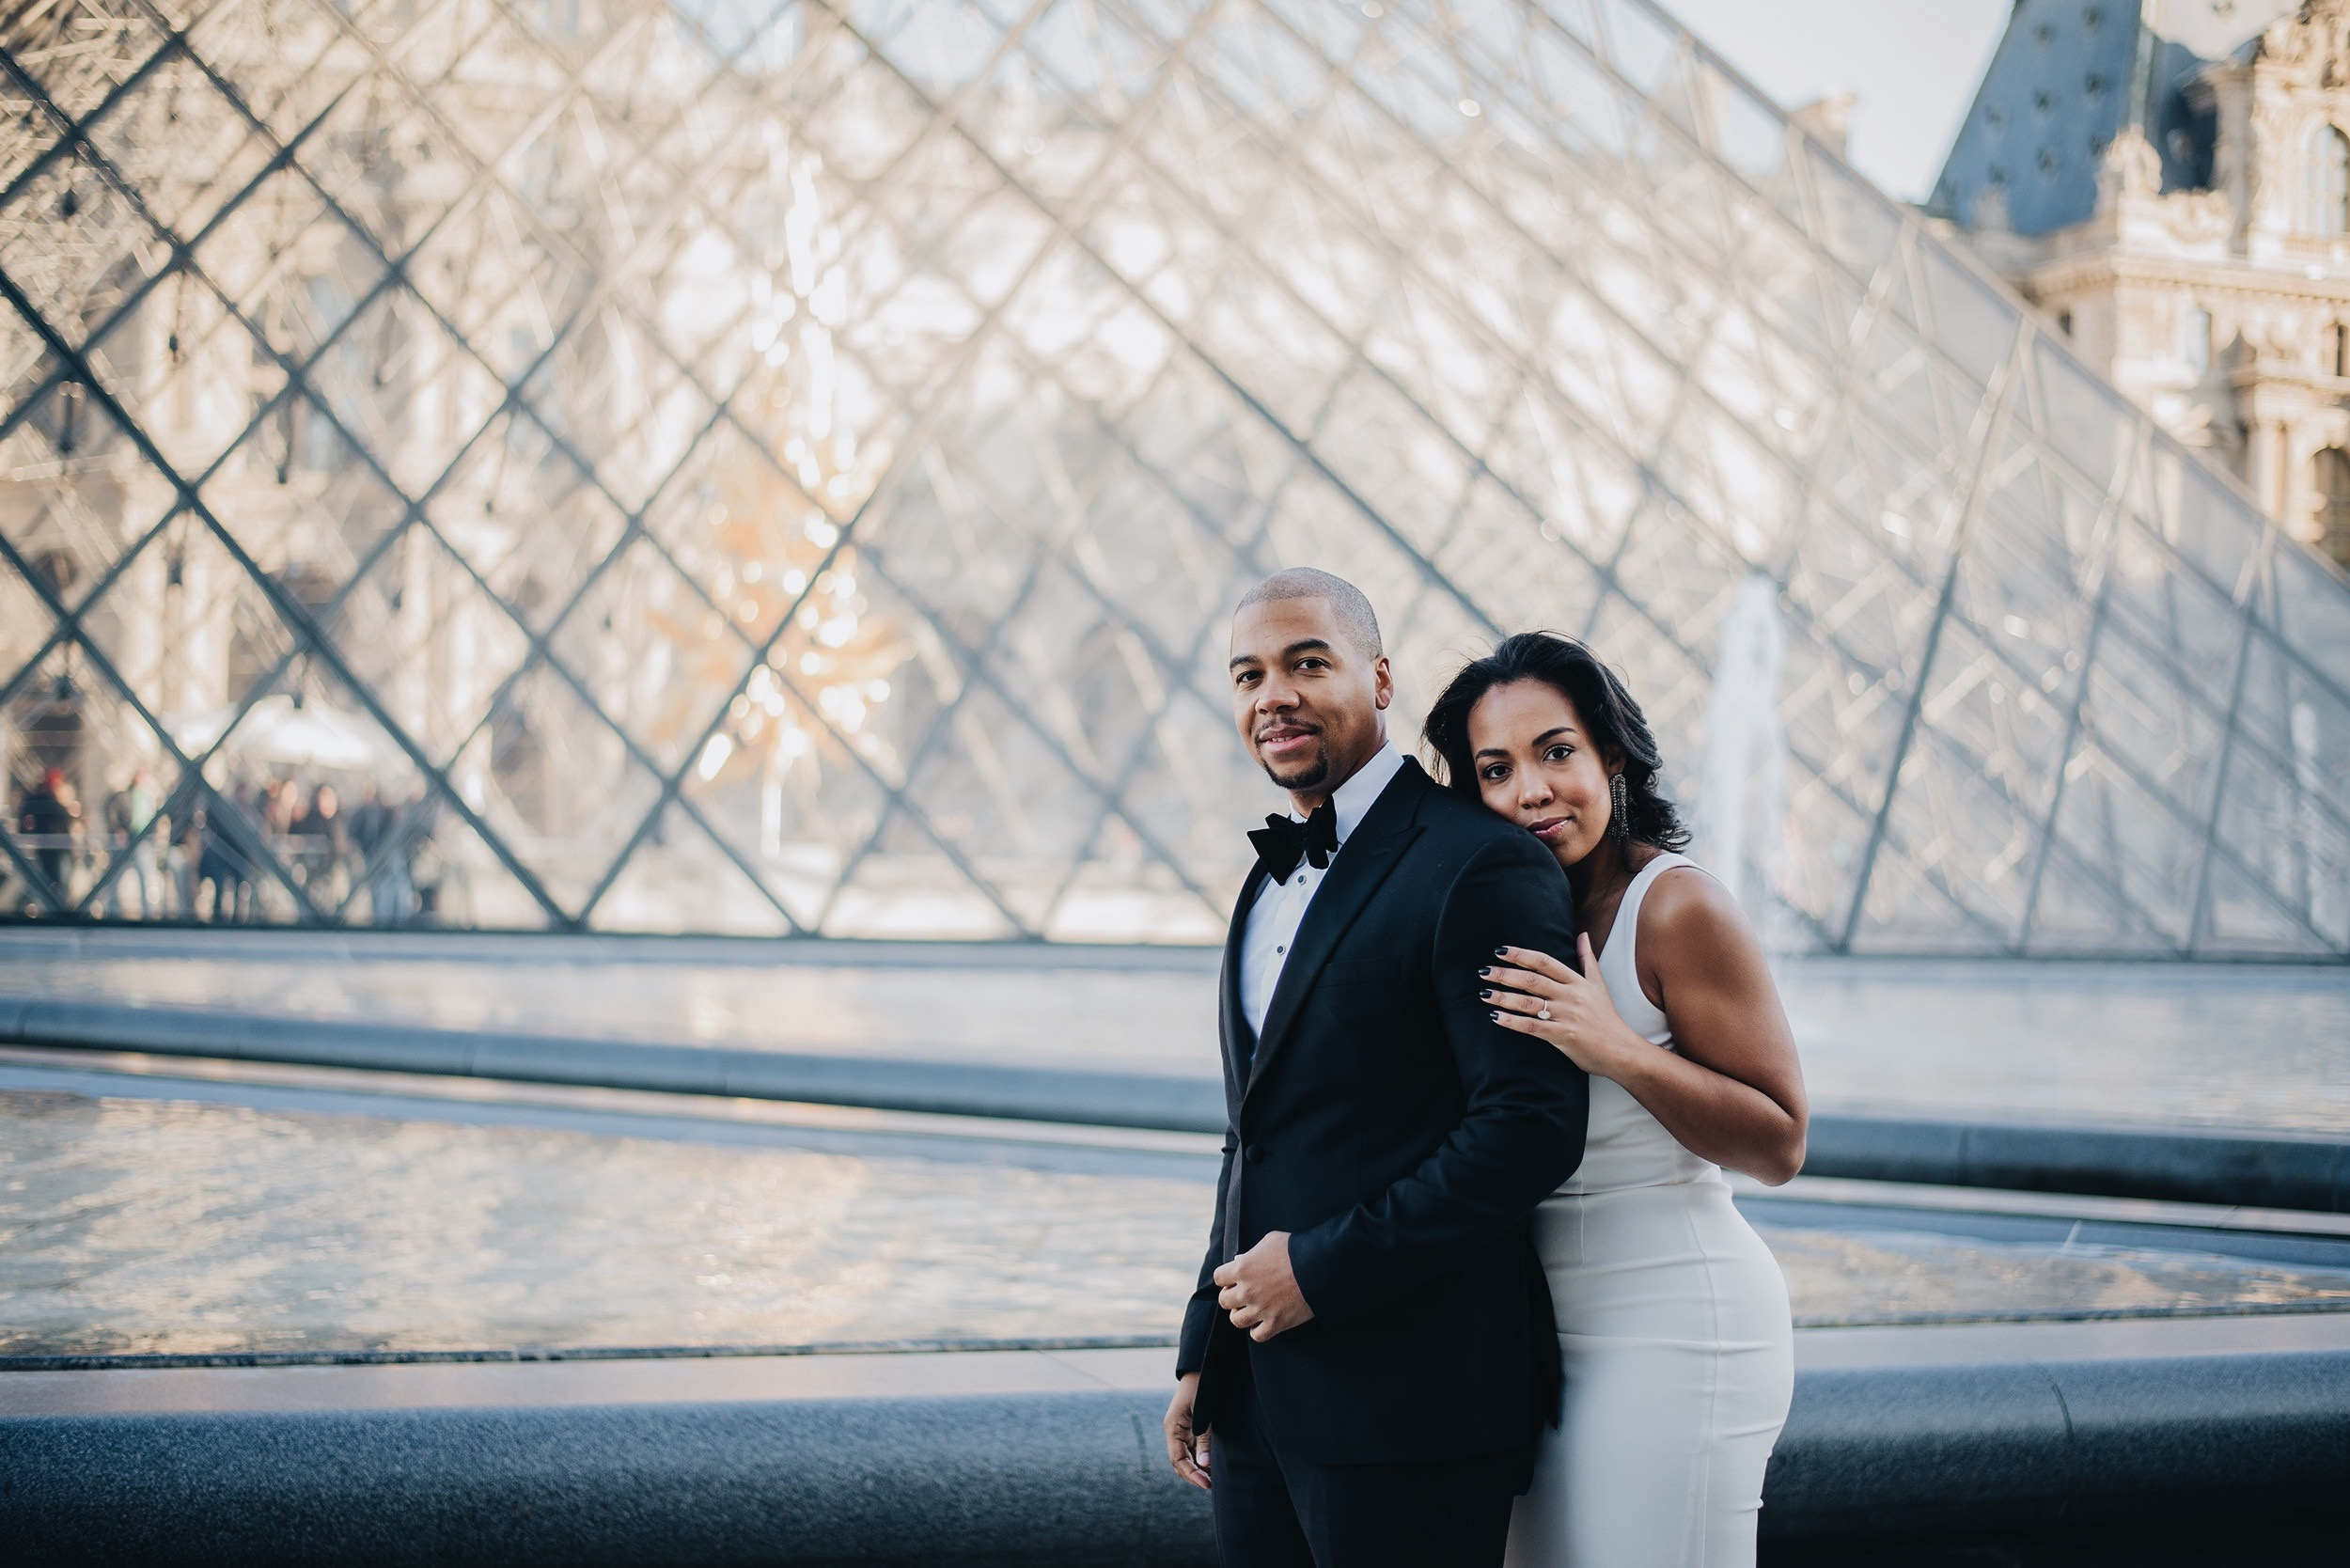 paris-engagement-session-the-louvre-katie-may-lucy-dress-anthropologie-bhldn-bridal-gown-bridesmaid-dress-the-black-tux-tuxedo-suit-rental-velvet-bow-tie-2.JPG